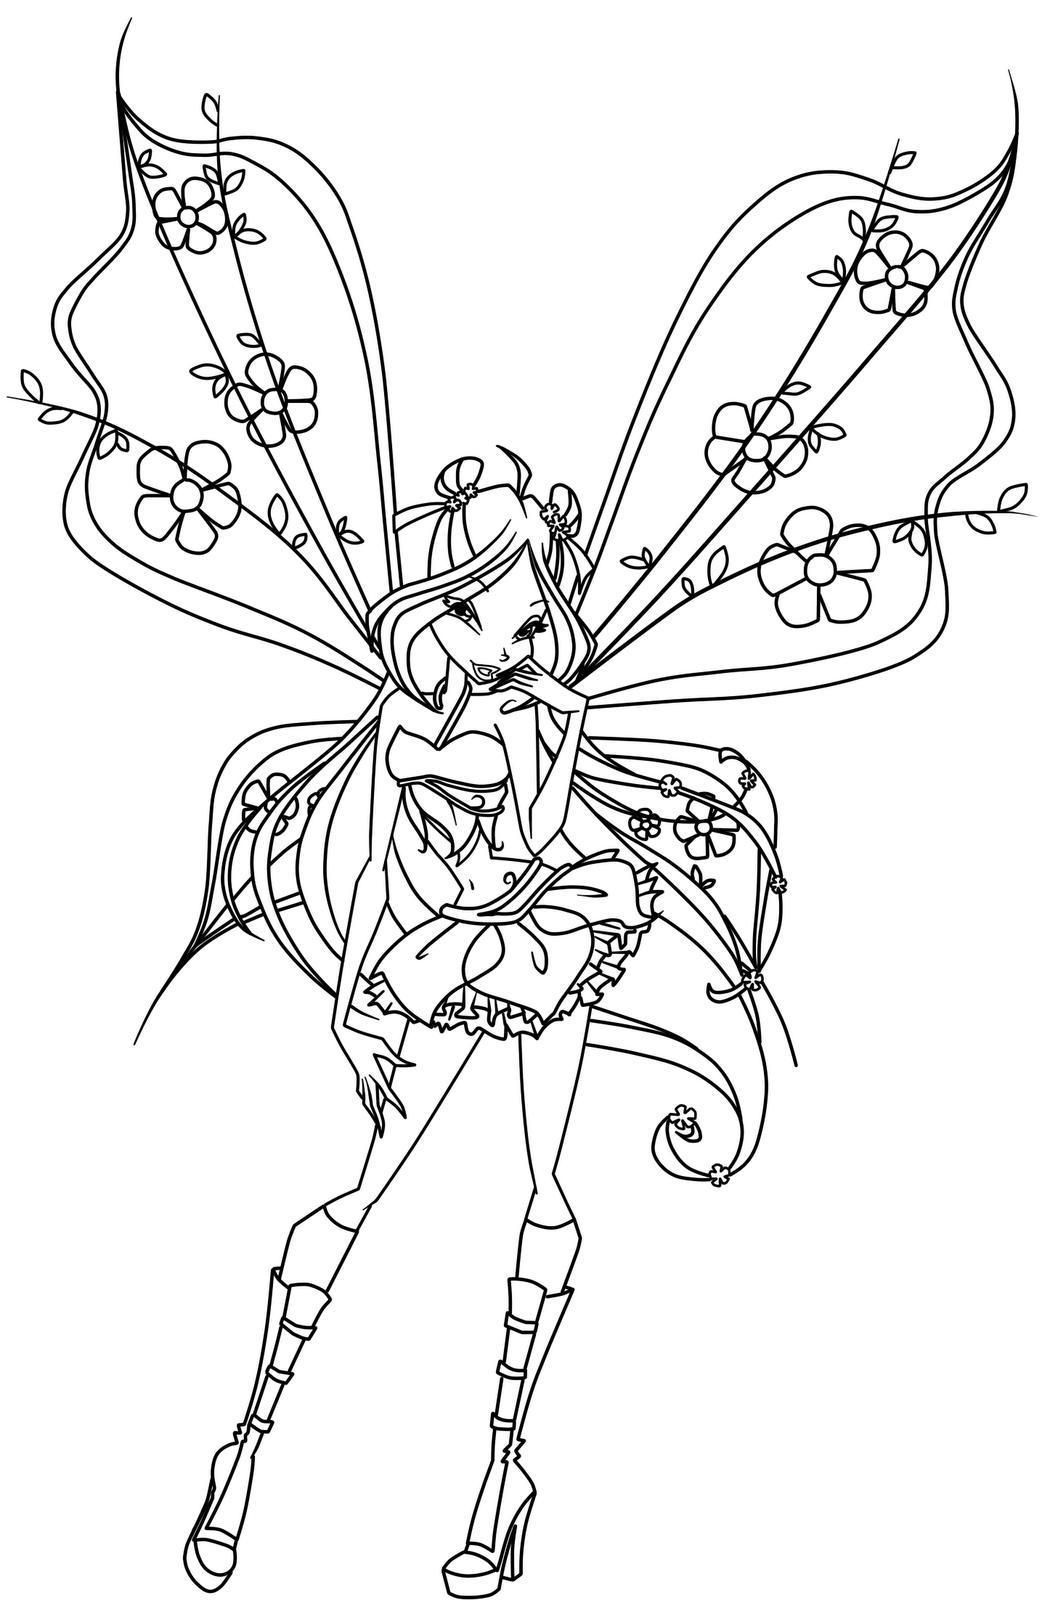 Winx princess coloring pages - Winx Club Coloring Page Free Printable Coloring Pages